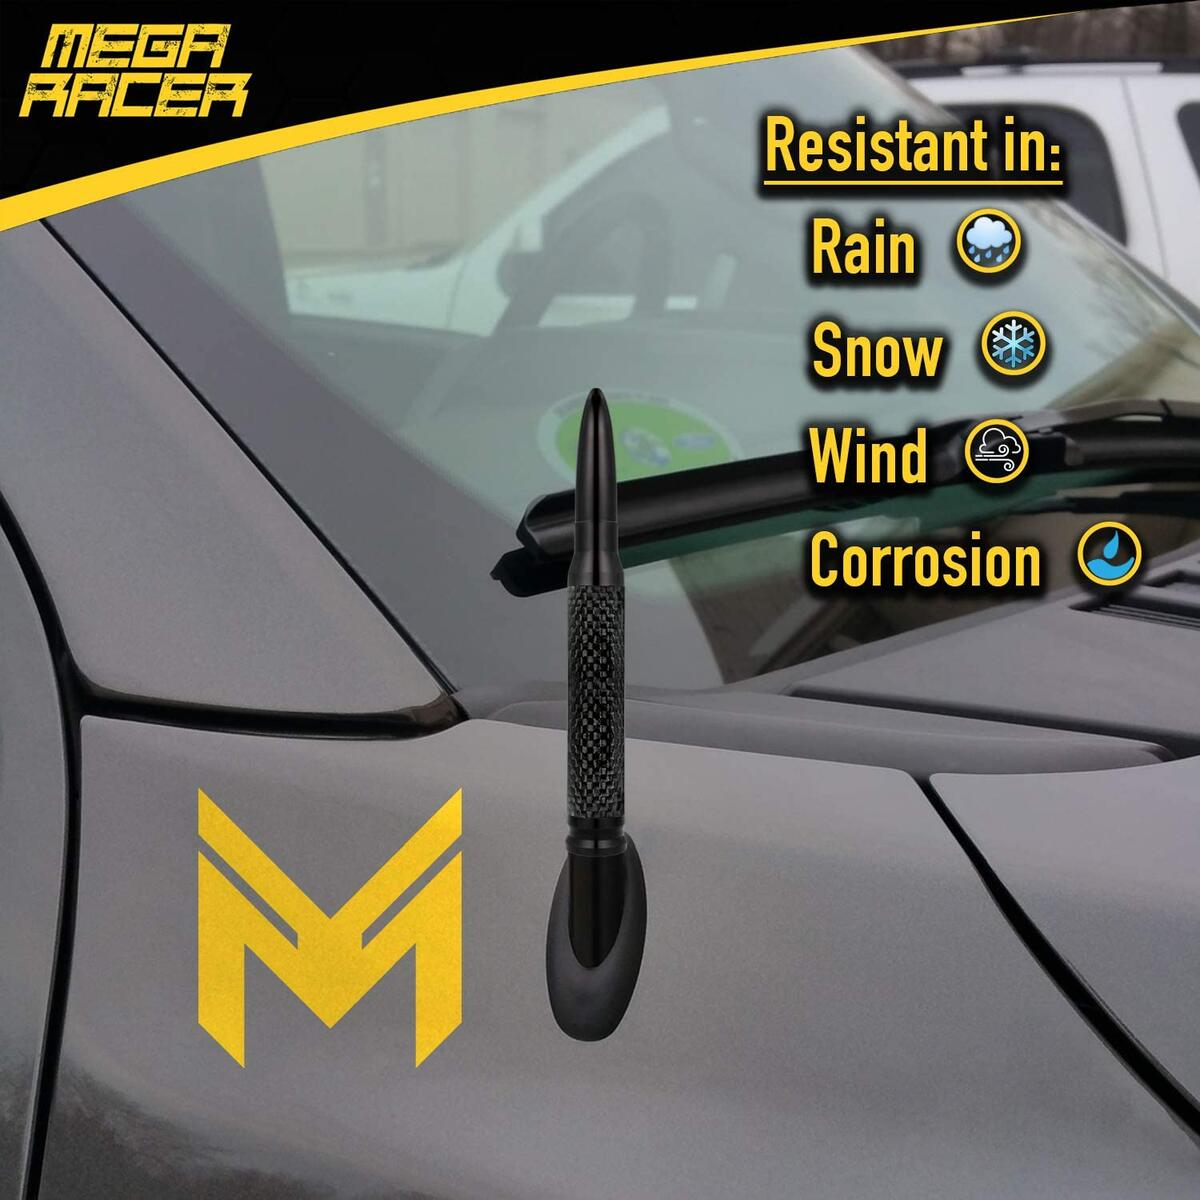 Mega Racer 50 Cal Bullet Antenna - Black Carbon Fiber 5.5 Inch AM/FM Compatible Universal Fit for SUV, Solid Aluminum with Anti-Theft Design and Car Wash Safe